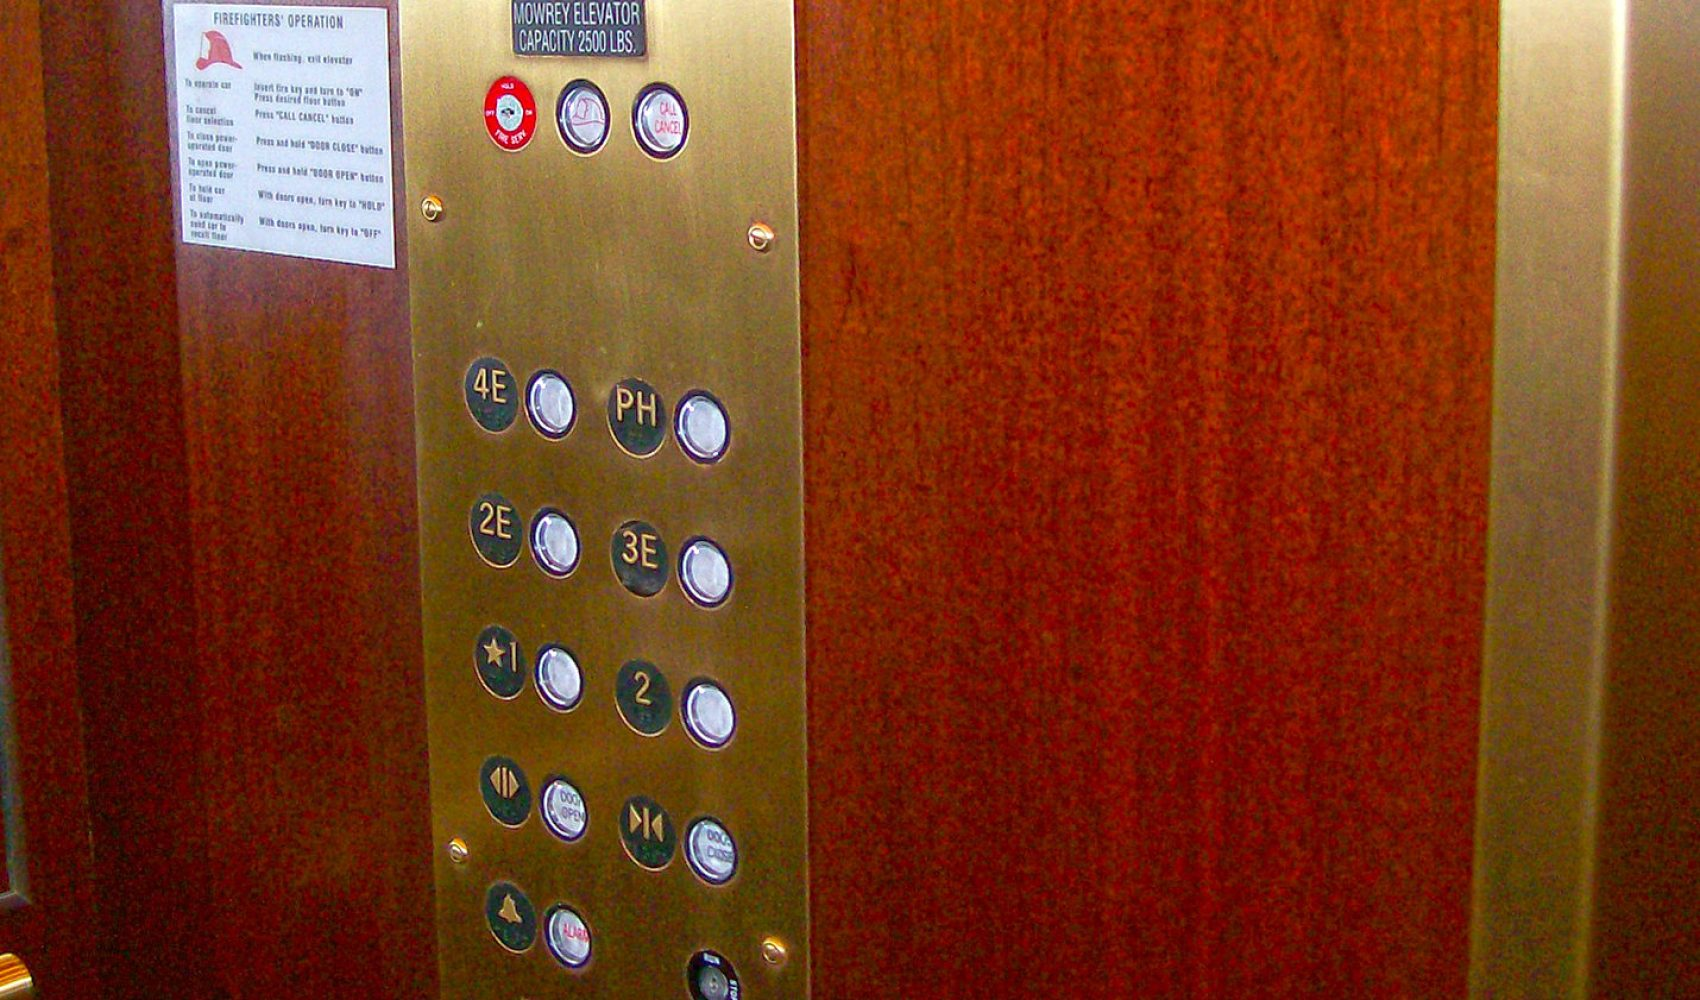 Bronze Elevator Refinishing and Resurfacing - Casellas Refinishing